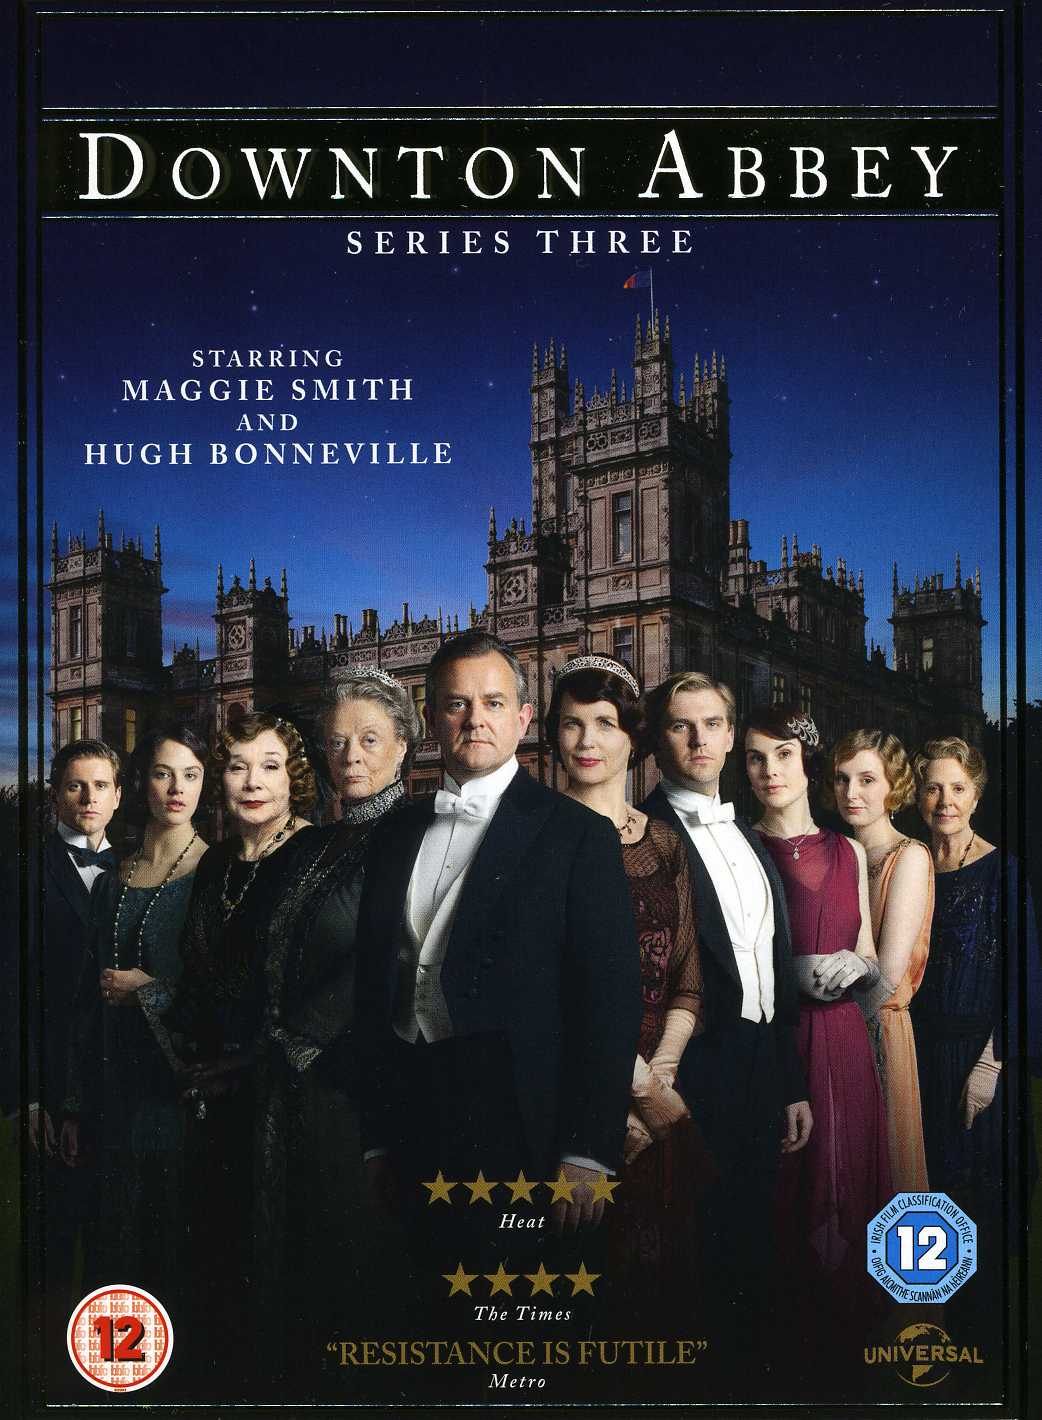 Downton Abbey  Series 3 - Fox - Film - UNIVERSAL PICTURES - 5050582916423 - 5/11-2012